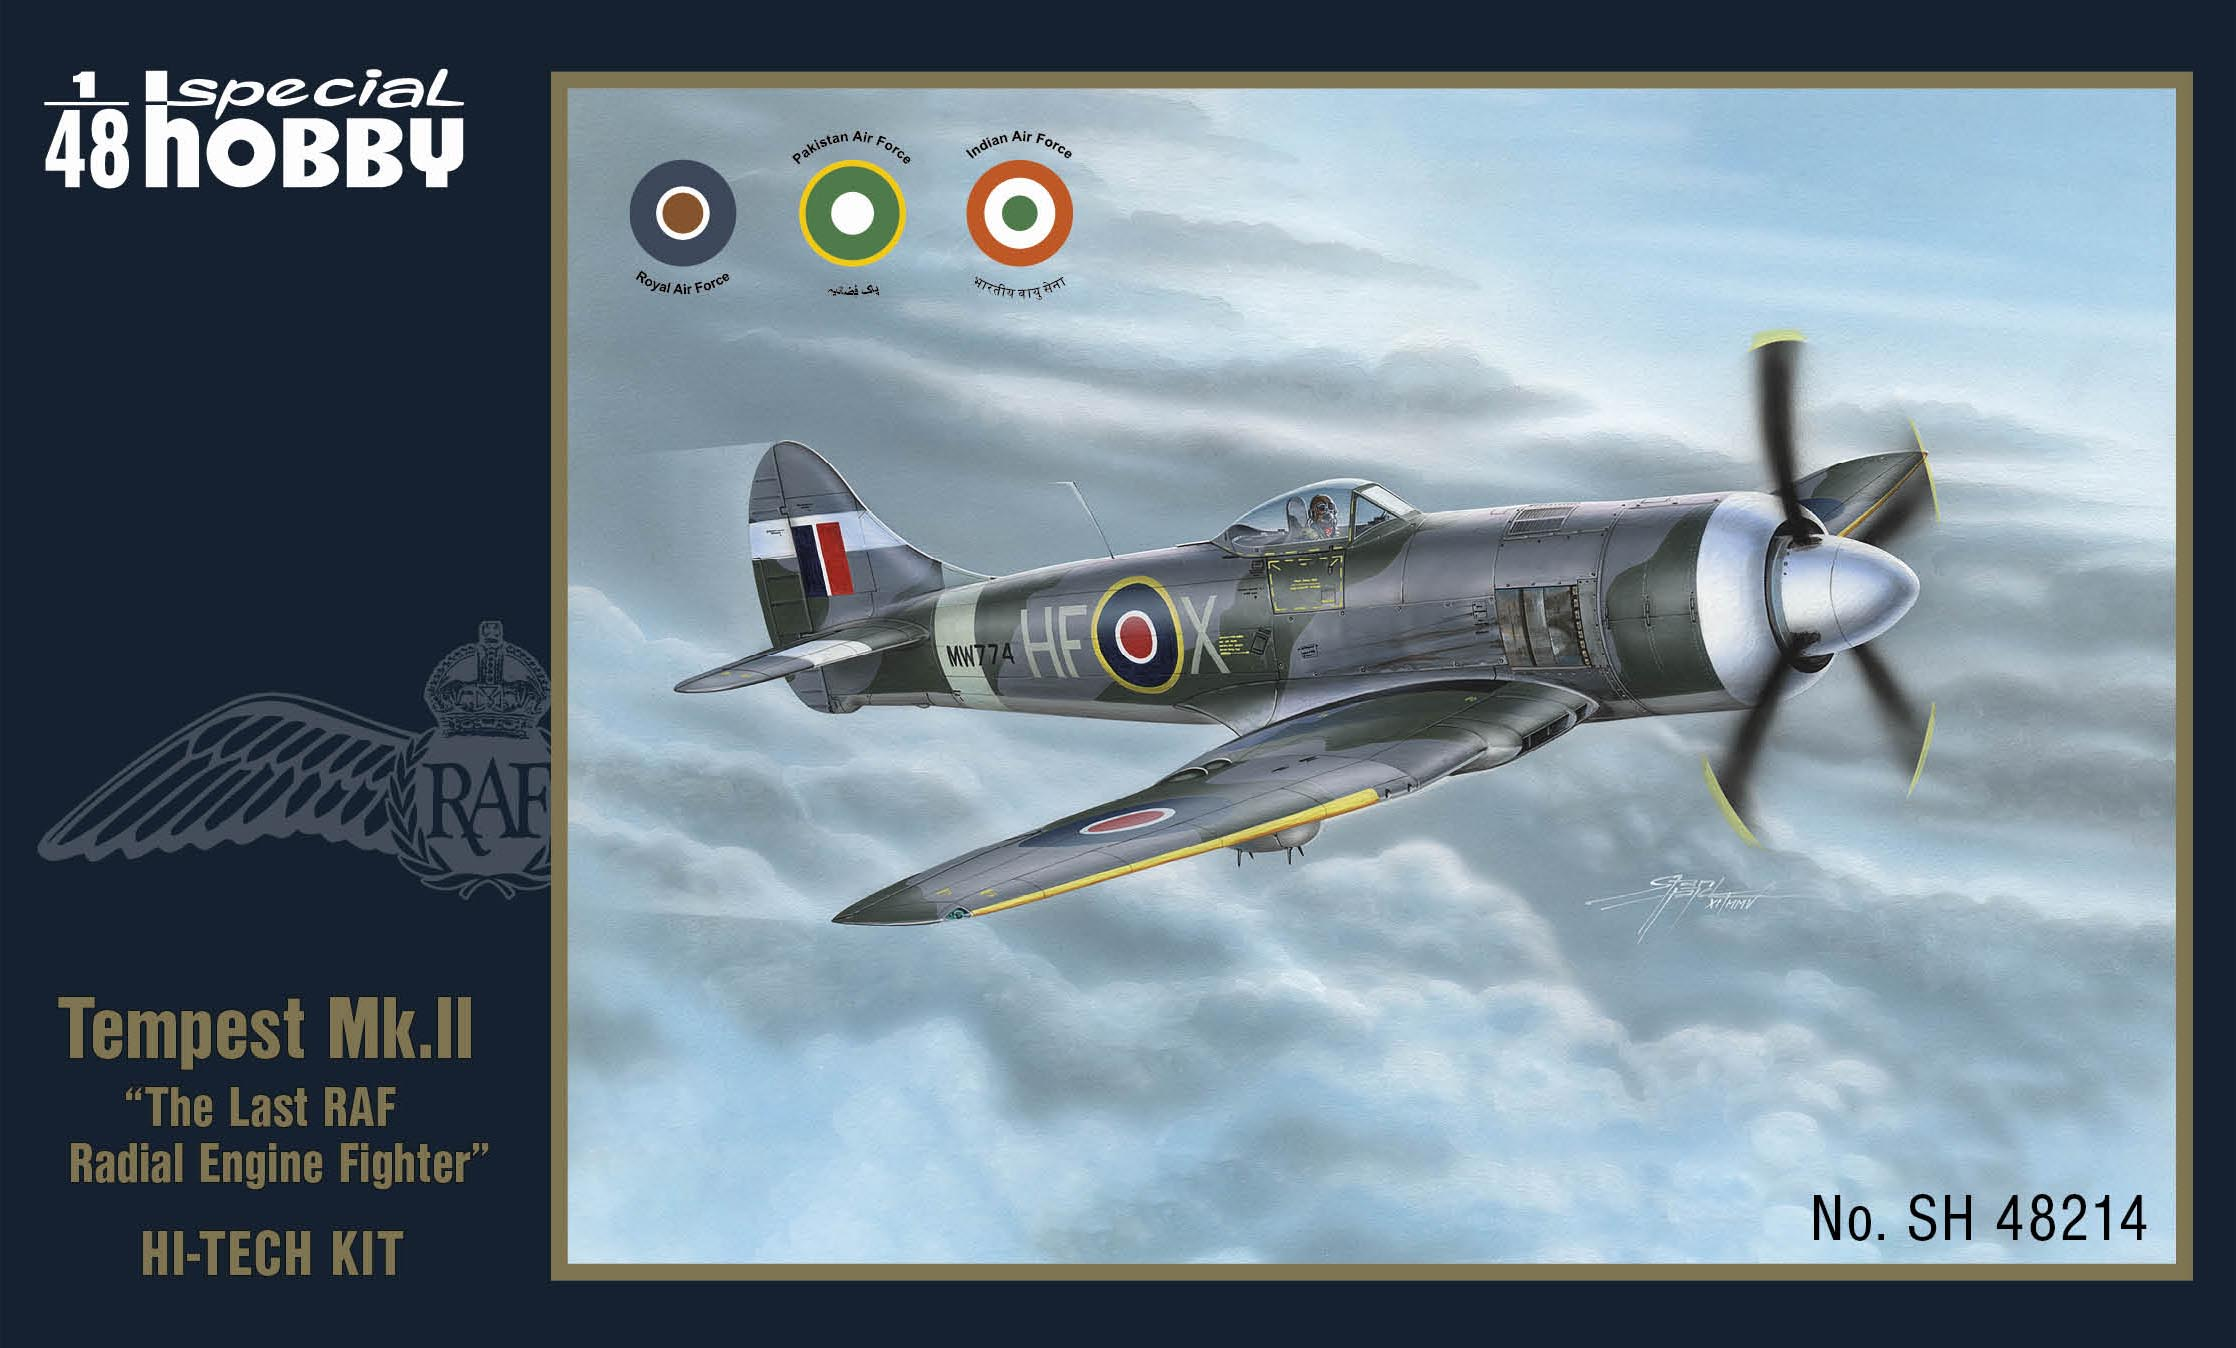 Special Hobby 1/48 Tempest Mk.II 'The Last RAF Radial Engine Fighter'